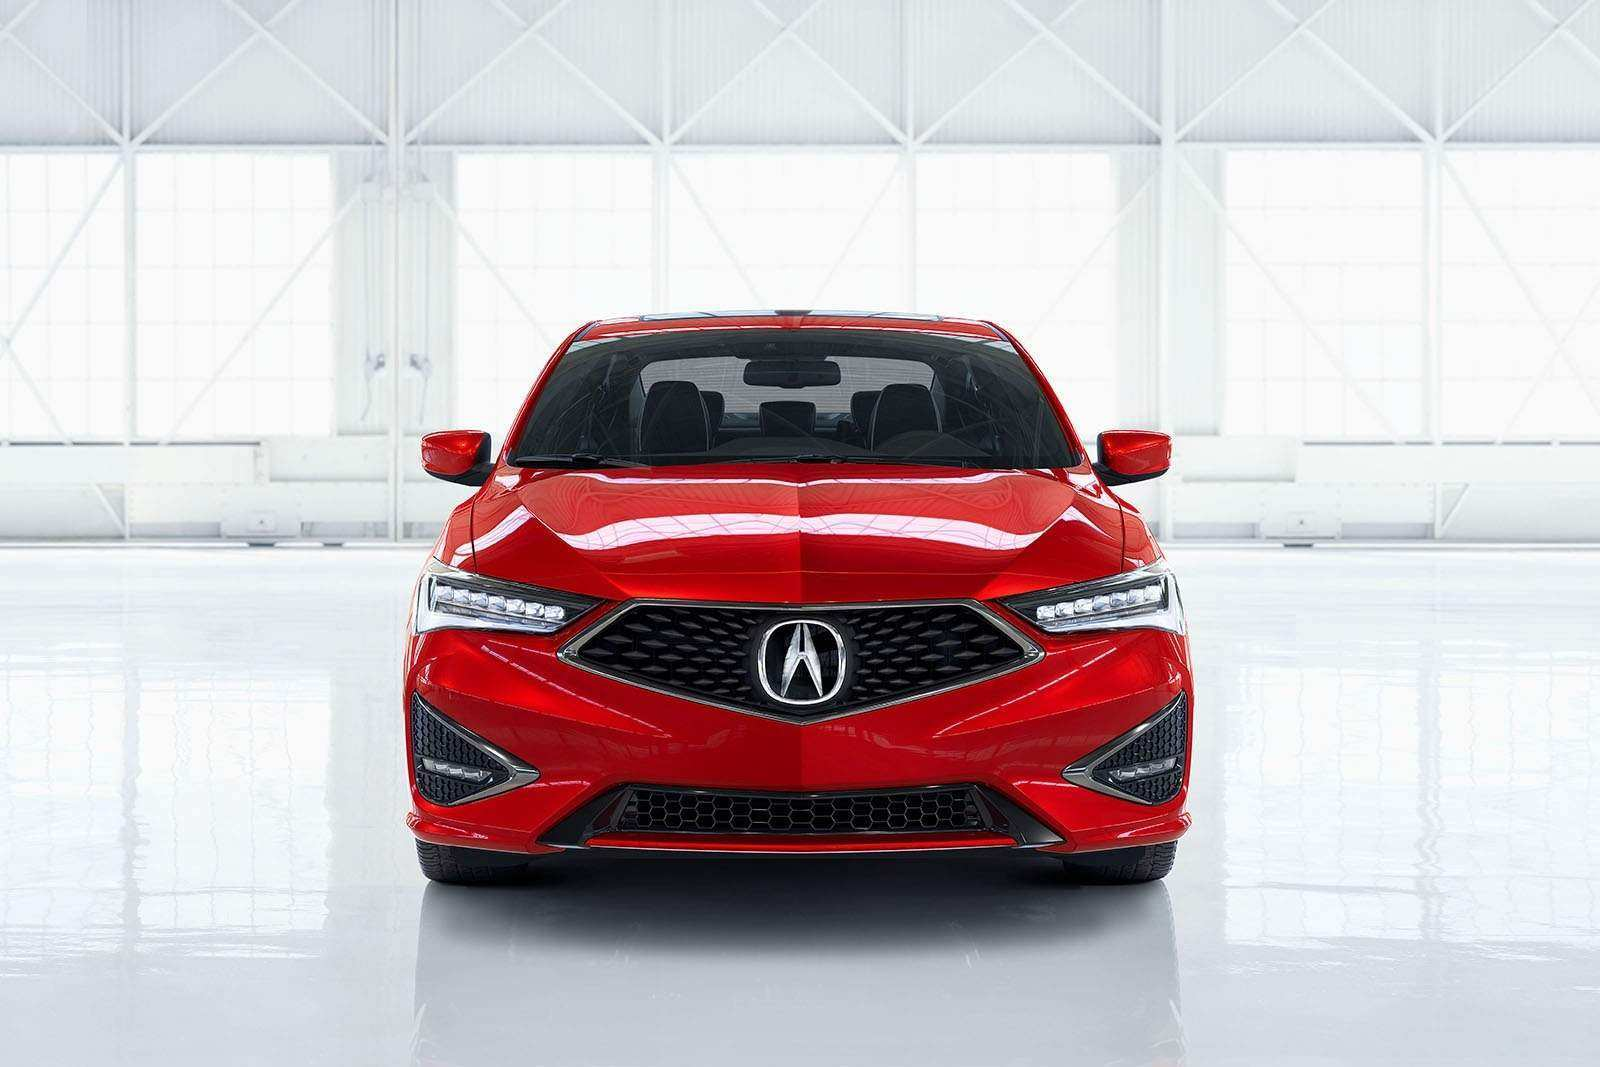 77 Concept of 2019 Acura Ilx Redesign and Concept for 2019 Acura Ilx